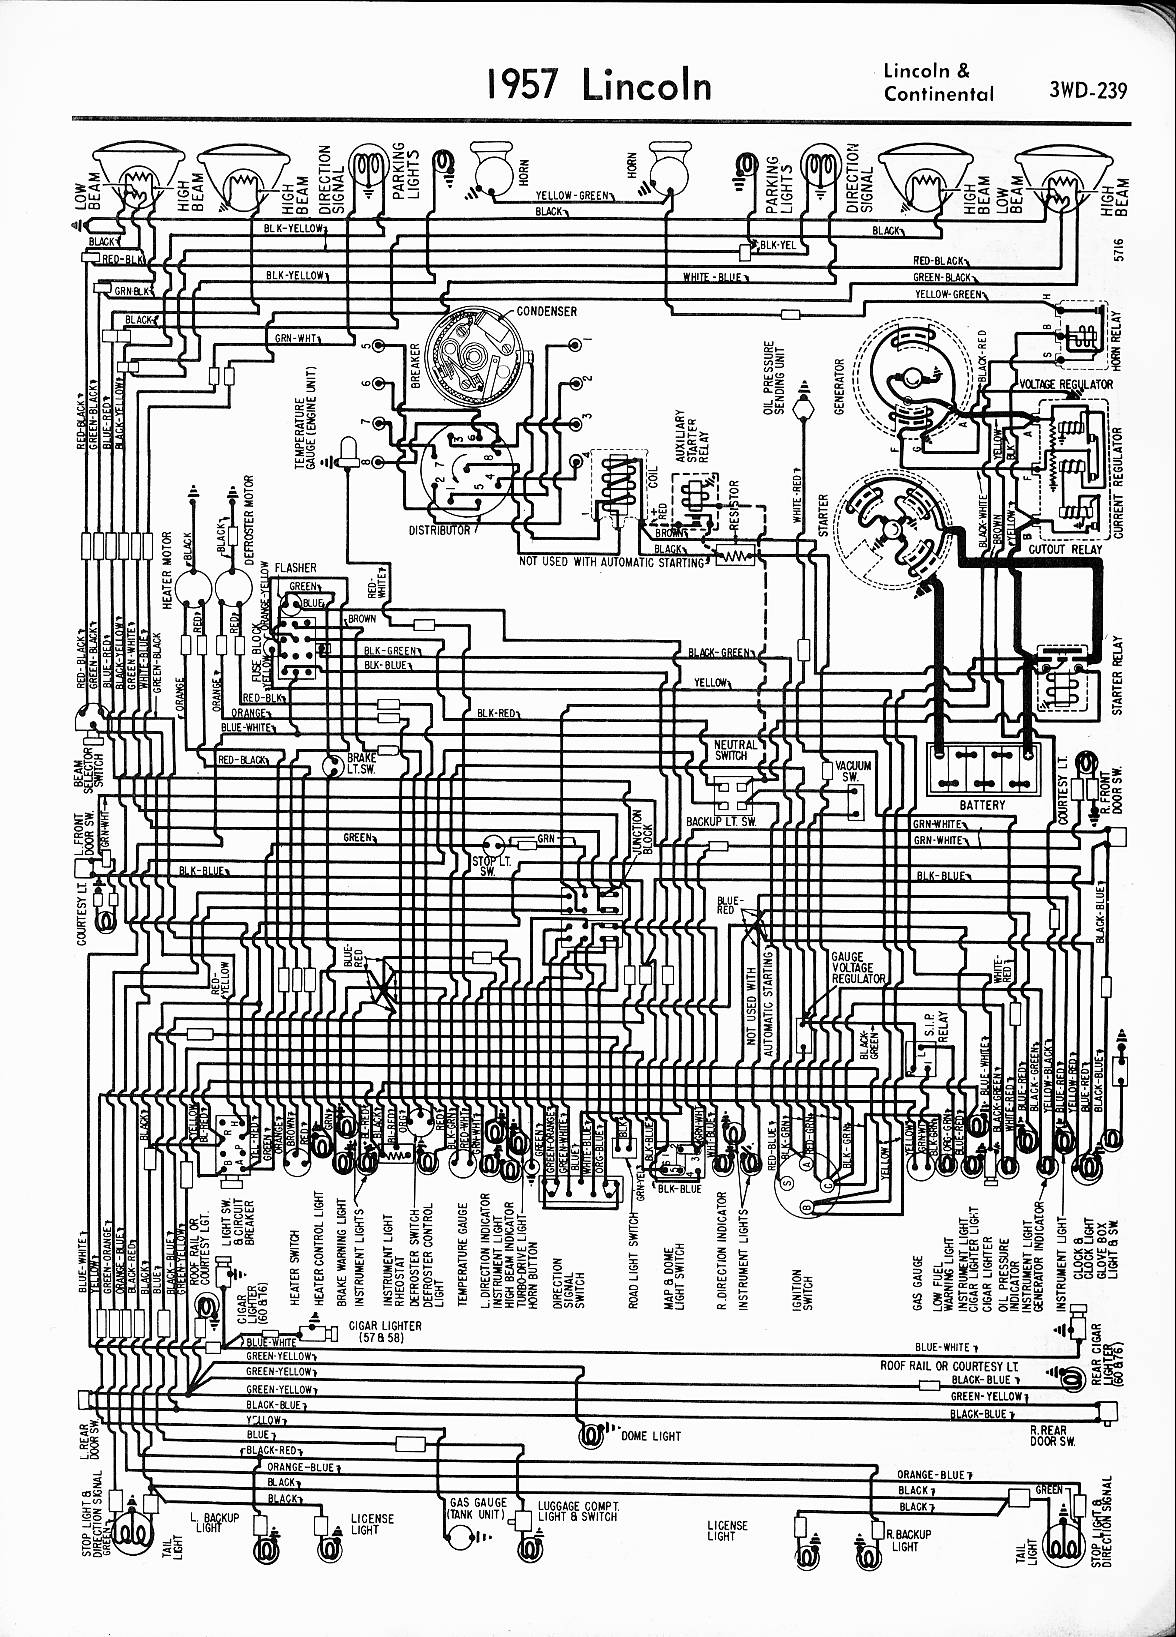 hight resolution of 1991 lincoln continental wiring diagram wiring library rh 31 codingcommunity de 2000 lincoln navigator engine diagram